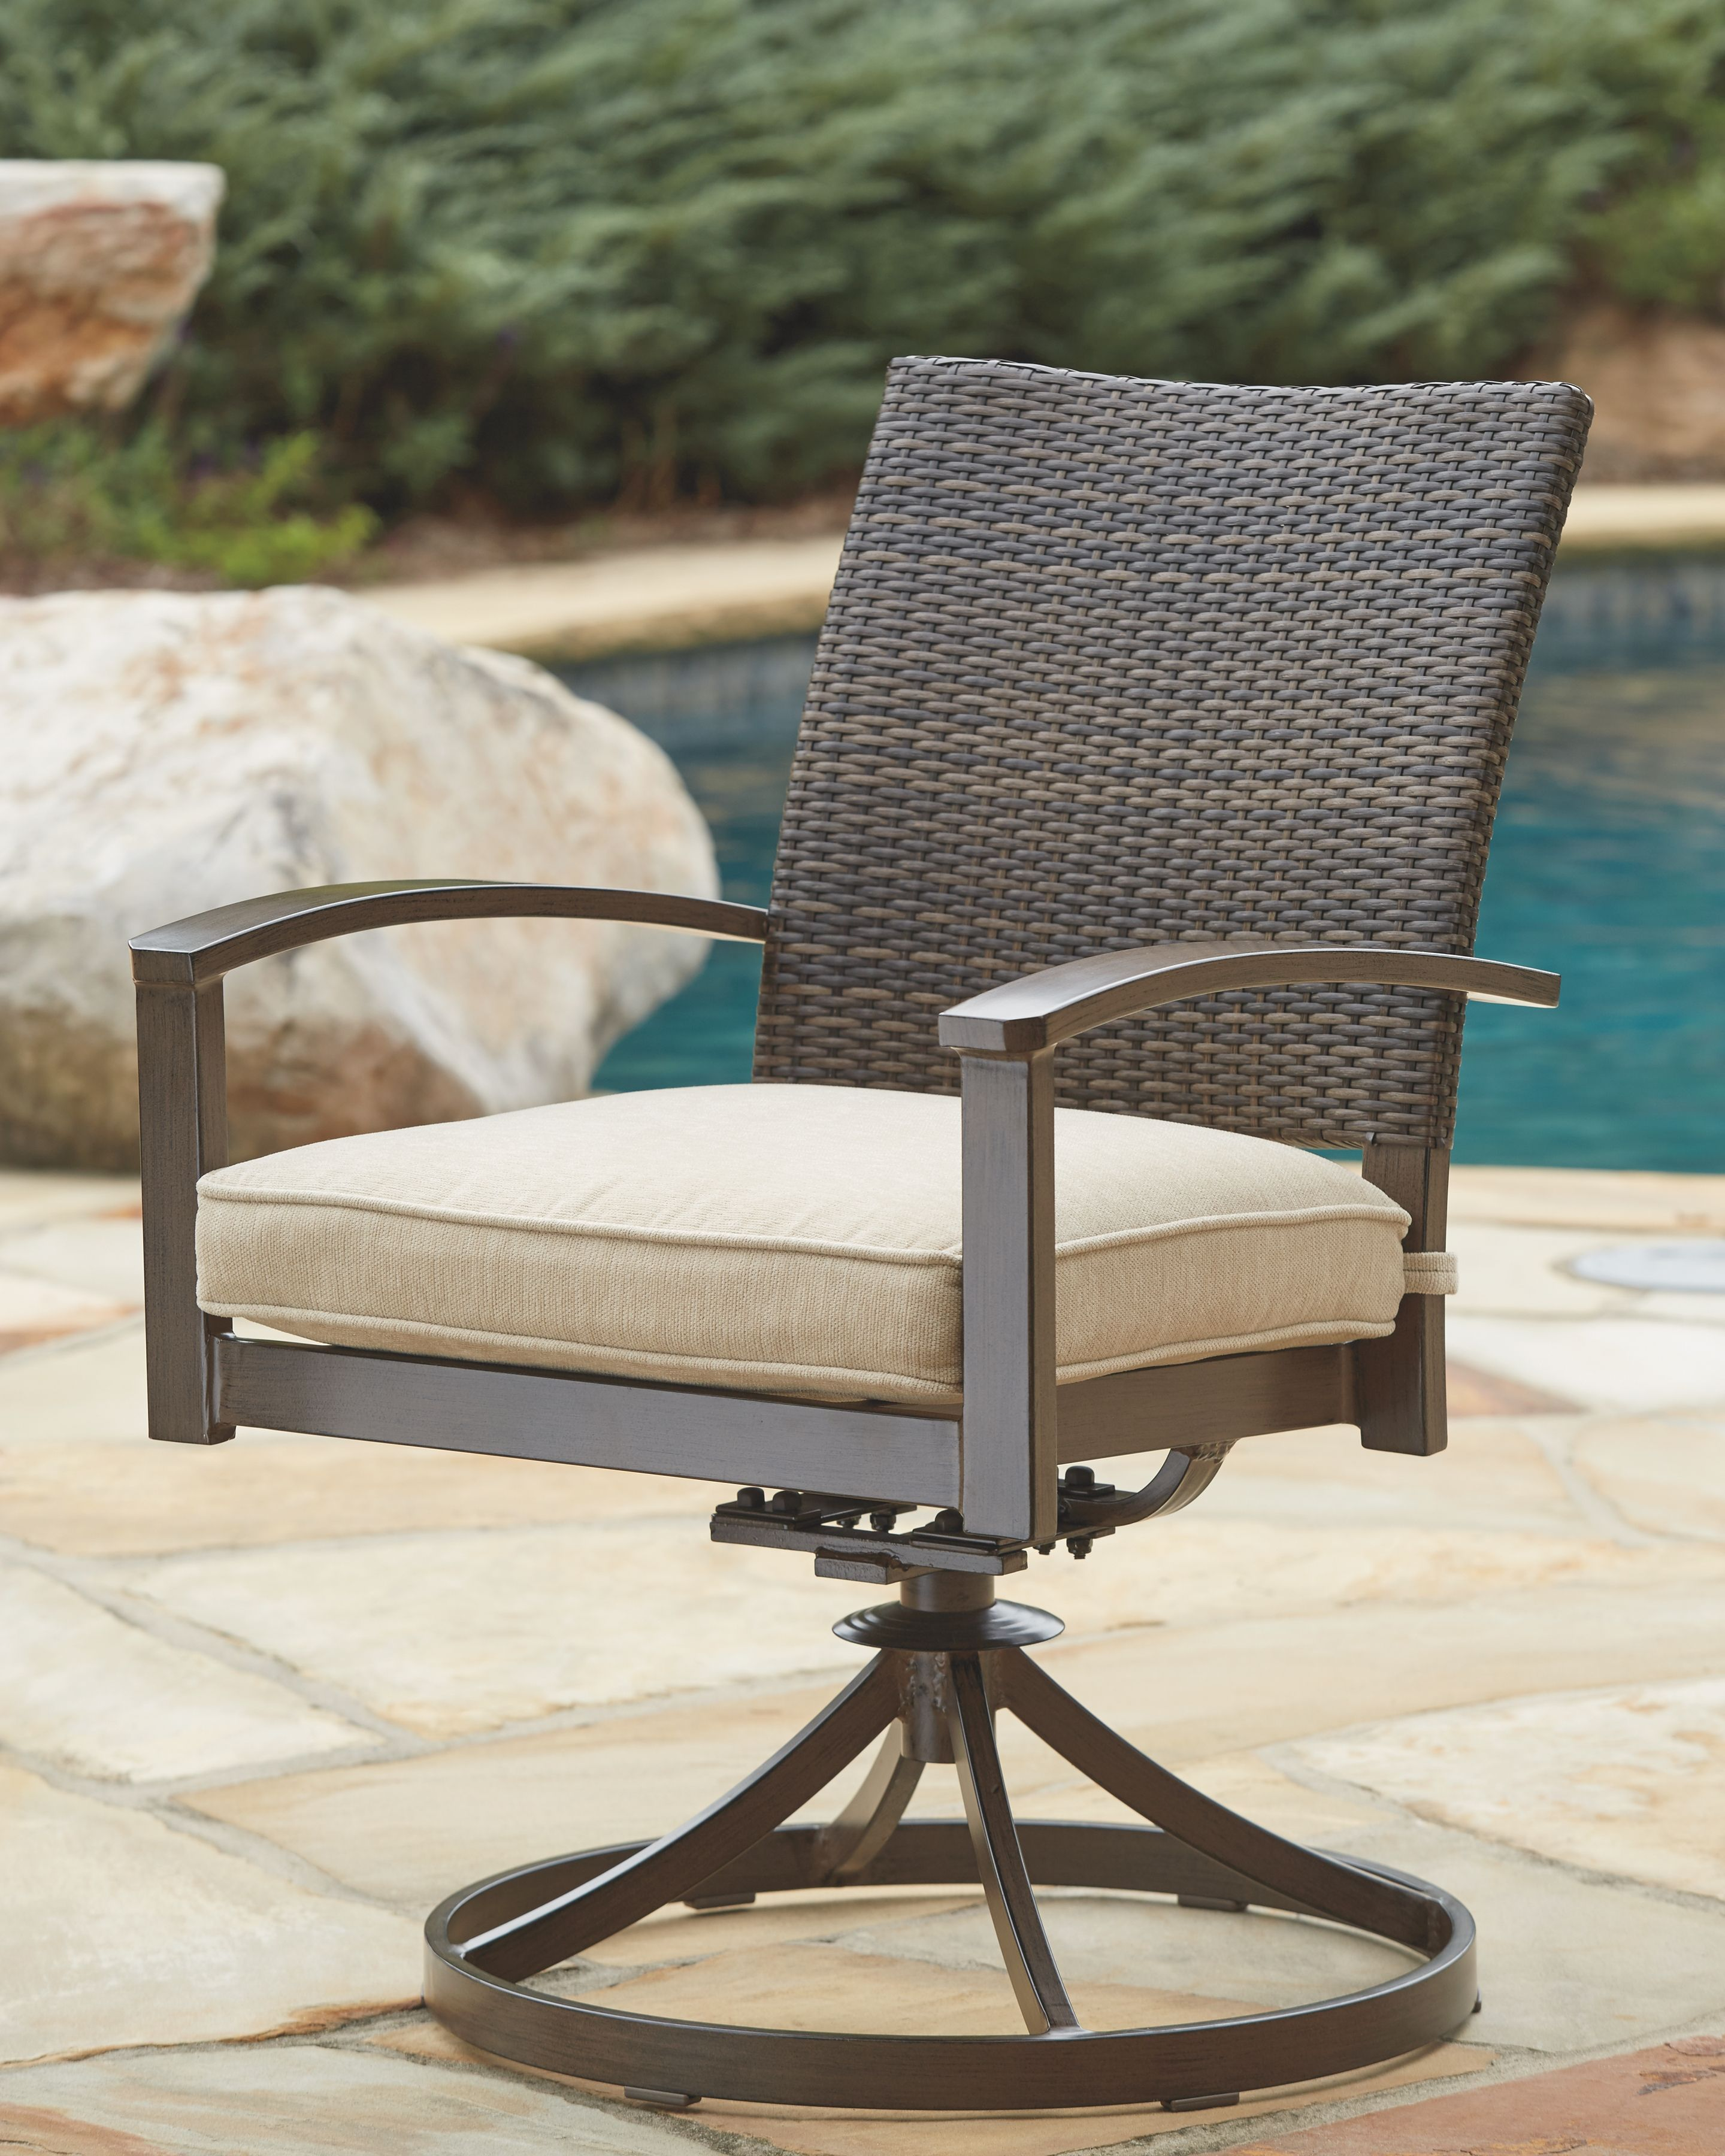 Excellent Moresdale Swivel Chair With Cushion Set Of 2 Brown Pabps2019 Chair Design Images Pabps2019Com